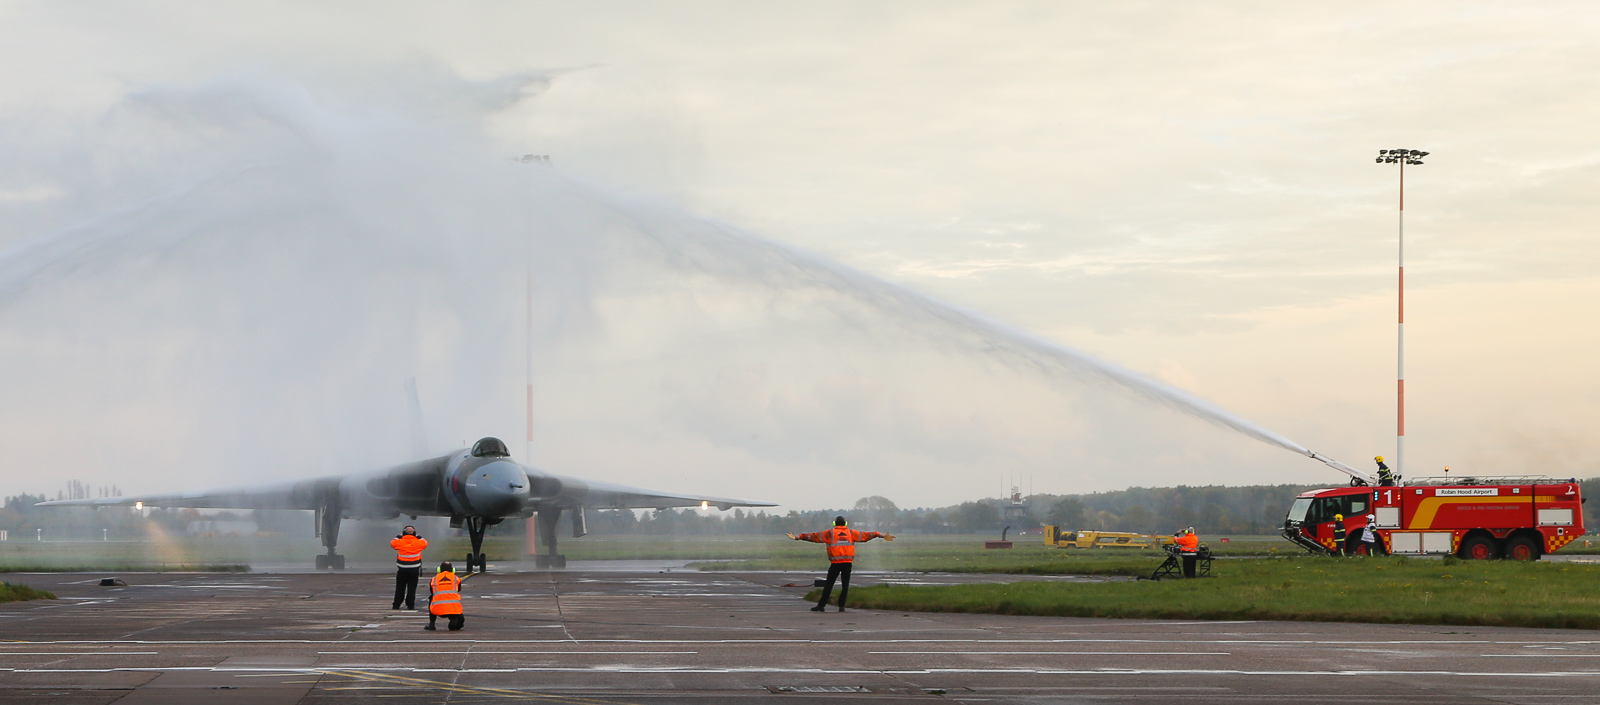 XH558 receives a final water-cannon salute as she taxies in after her final flight. (photo by Steven Comber)